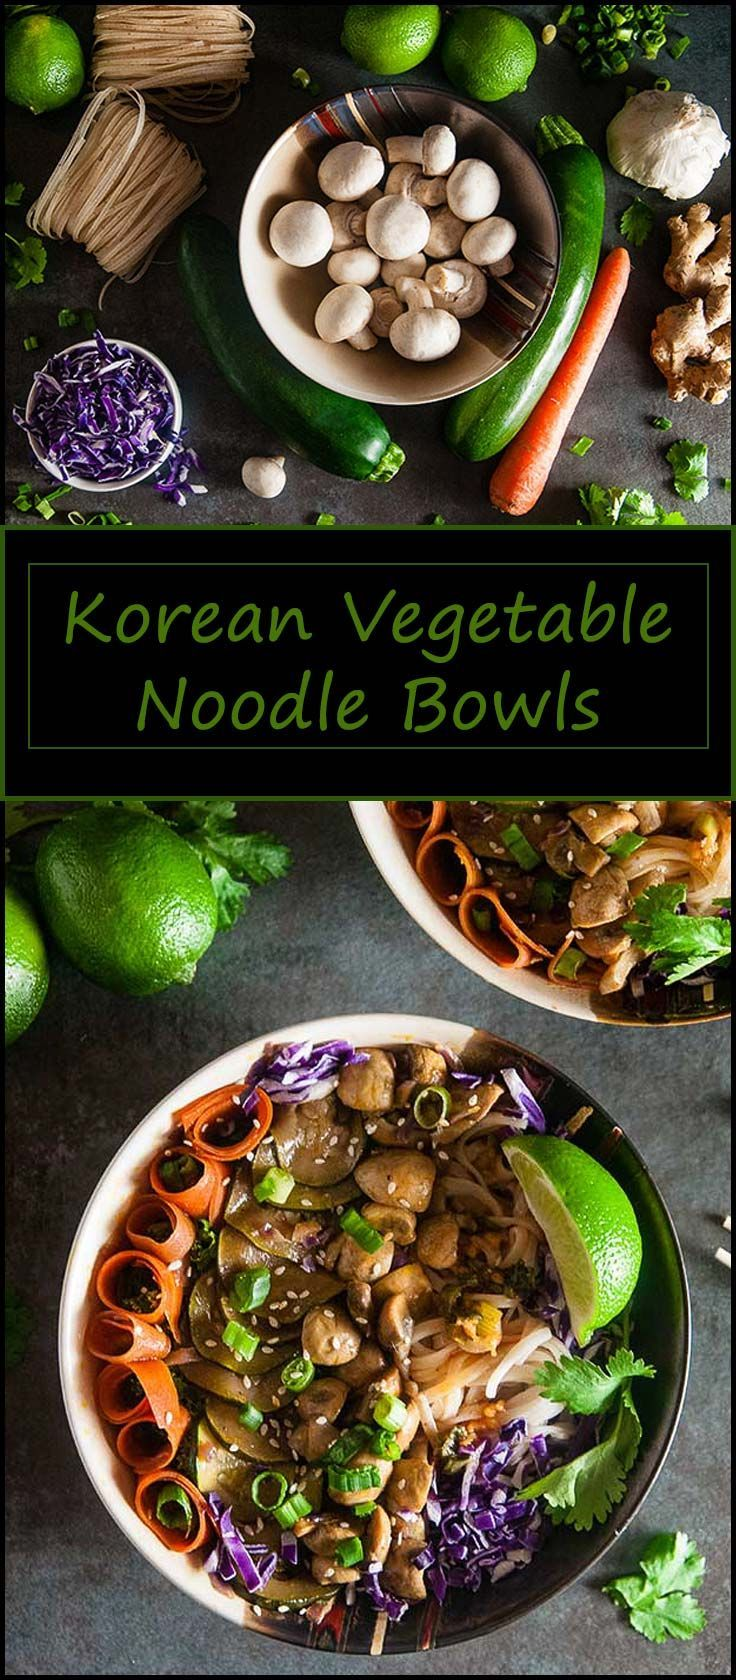 Quick Korean Vegetable Noodle Bowls inspired by bibimbap make for a vegetarian and gluten free friendly lunch or dinner that's ready in under 20 minutes from www.seasonedsprinkles.com #recipe #dinner #vegetarian #glutenfree #noodlebowl